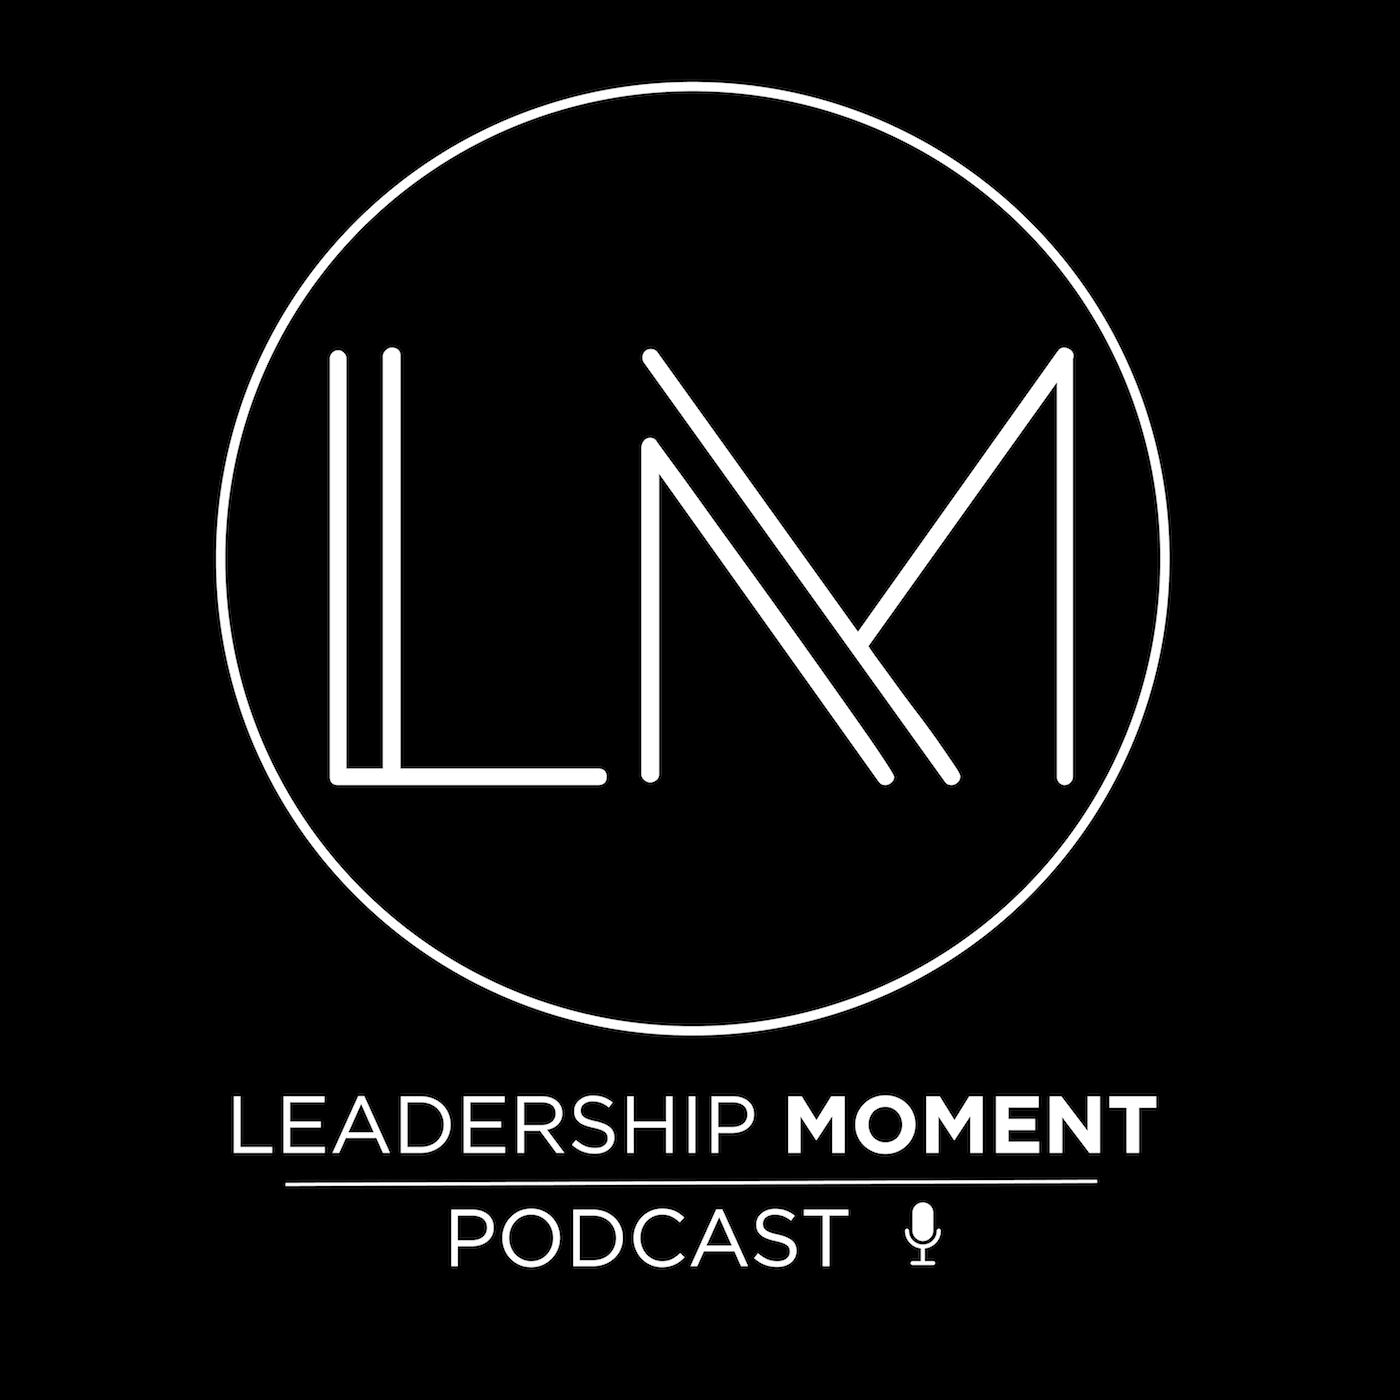 Leadership with Henri Nouwen and the Desert Fathers - LM0205